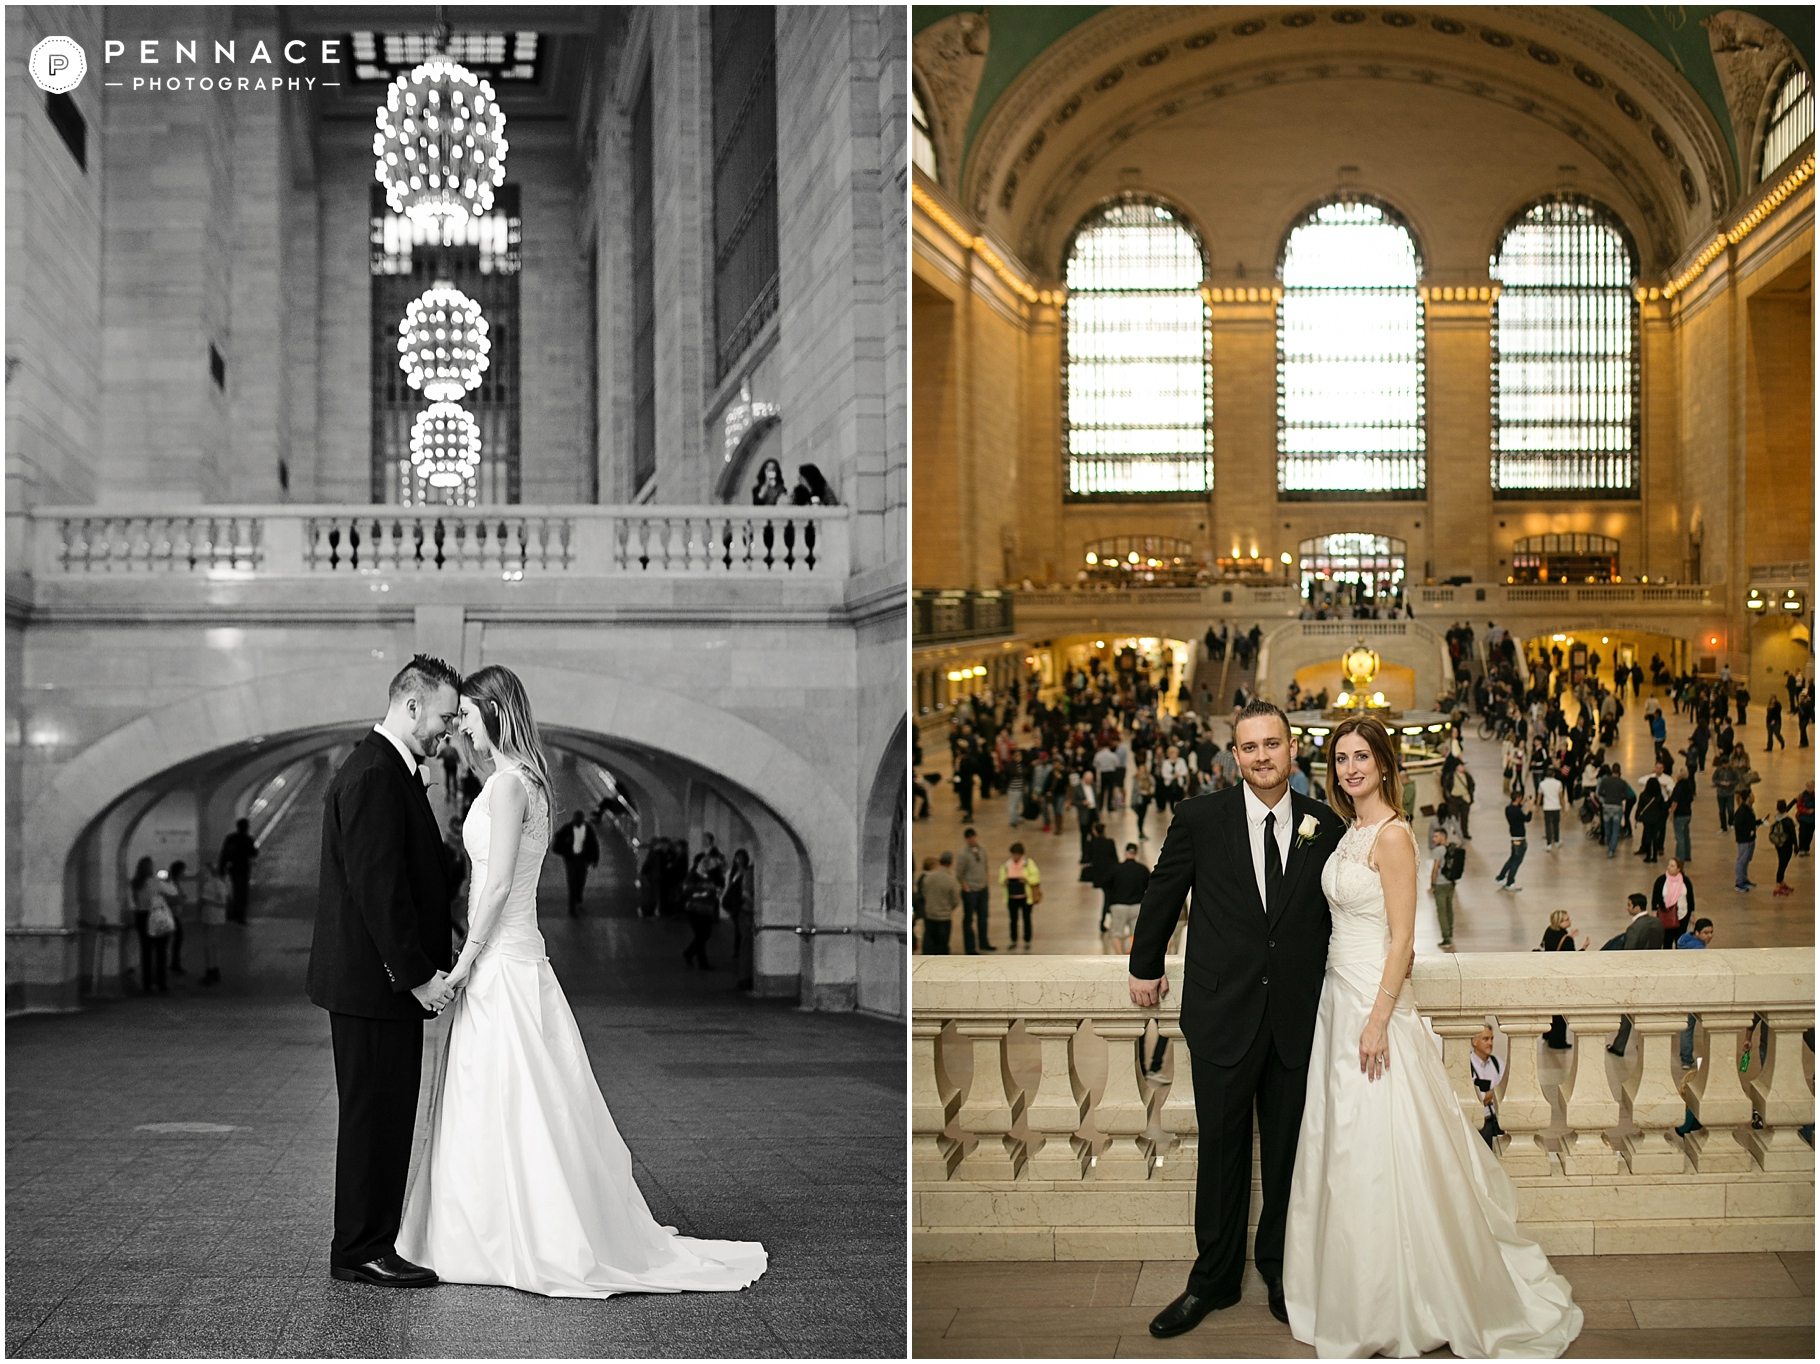 Getting Married In Grand Central Station Train Wedding Photos